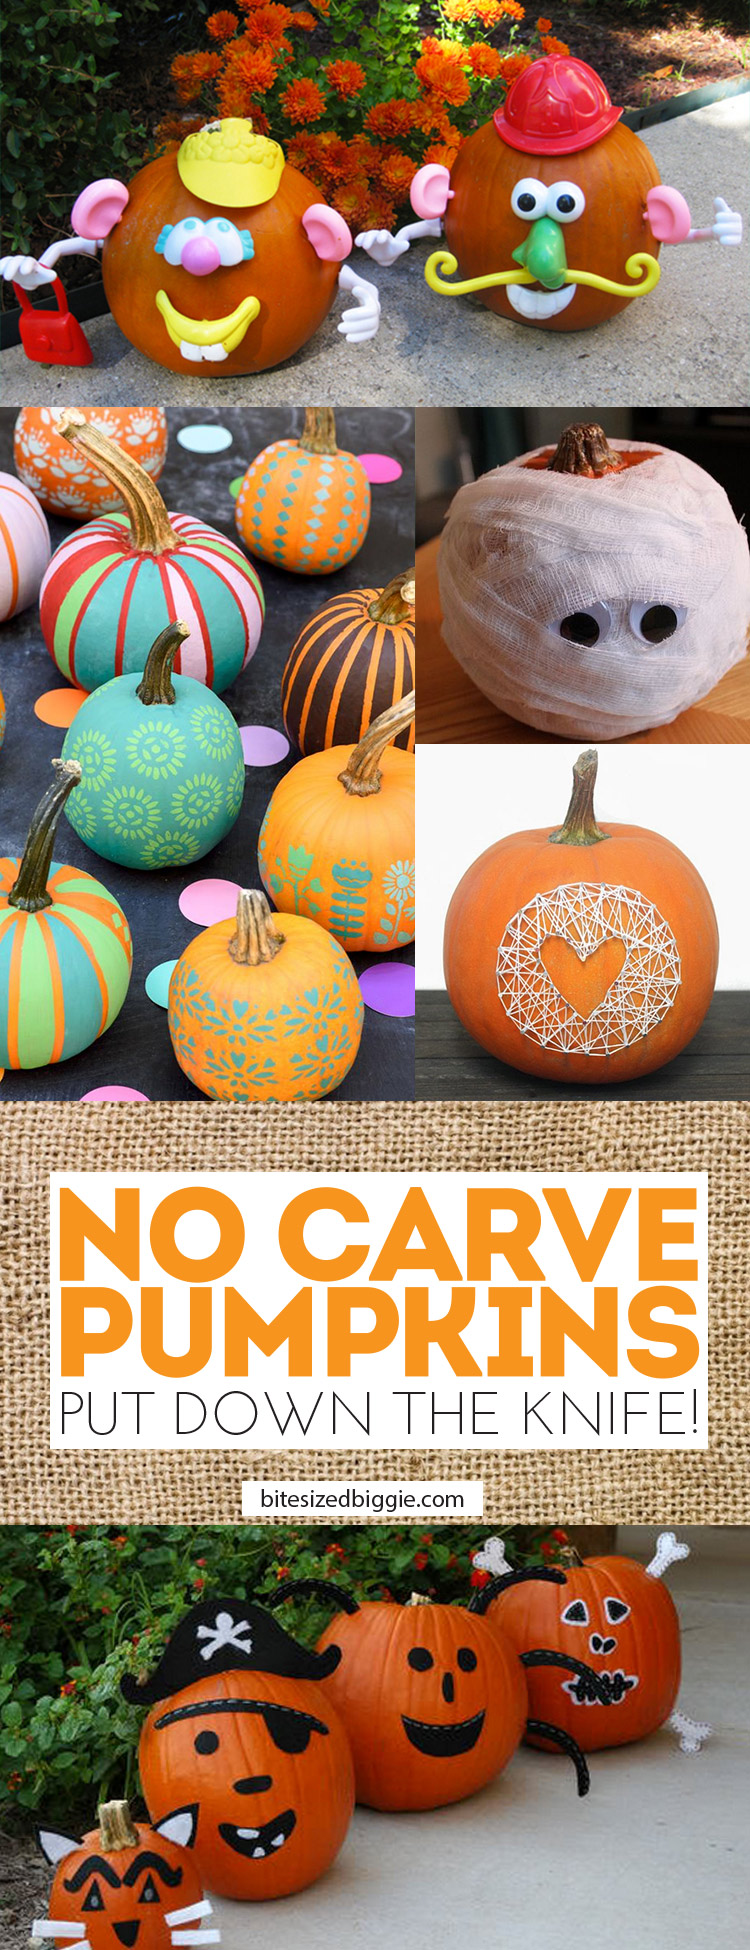 No carve pumpkins - PUT DOWN THAT KNIFE! Hahahaha!